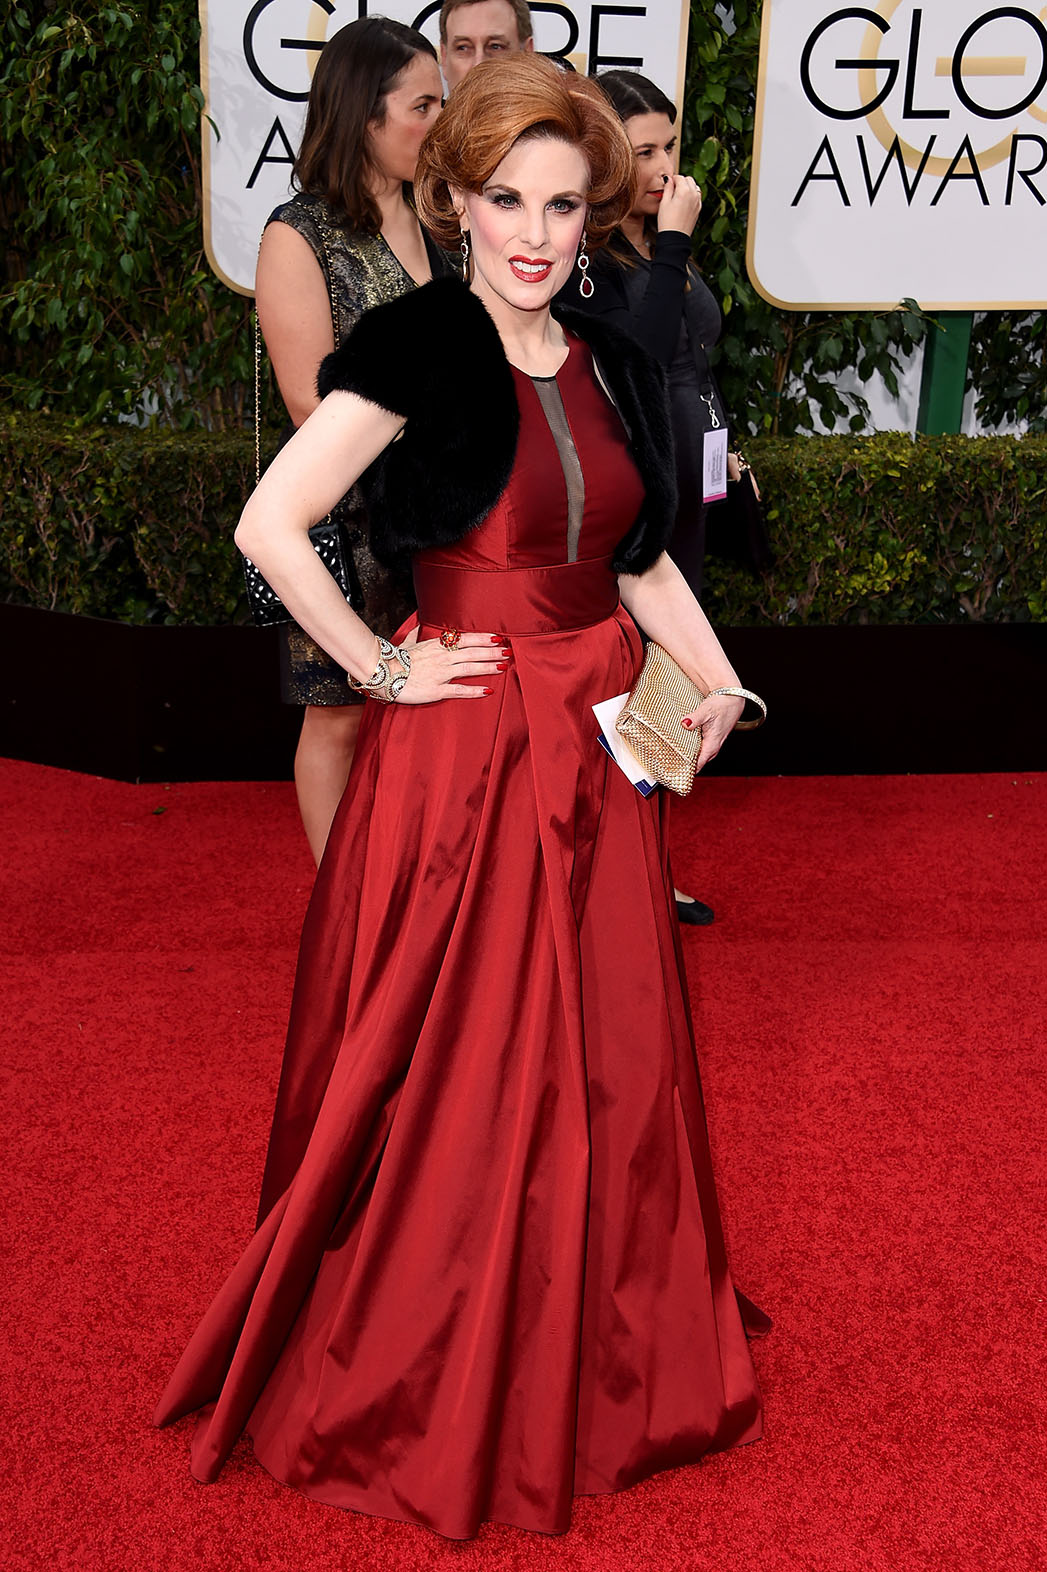 Golden Globes The Red Carpet Arrivals Hollywood Reporter